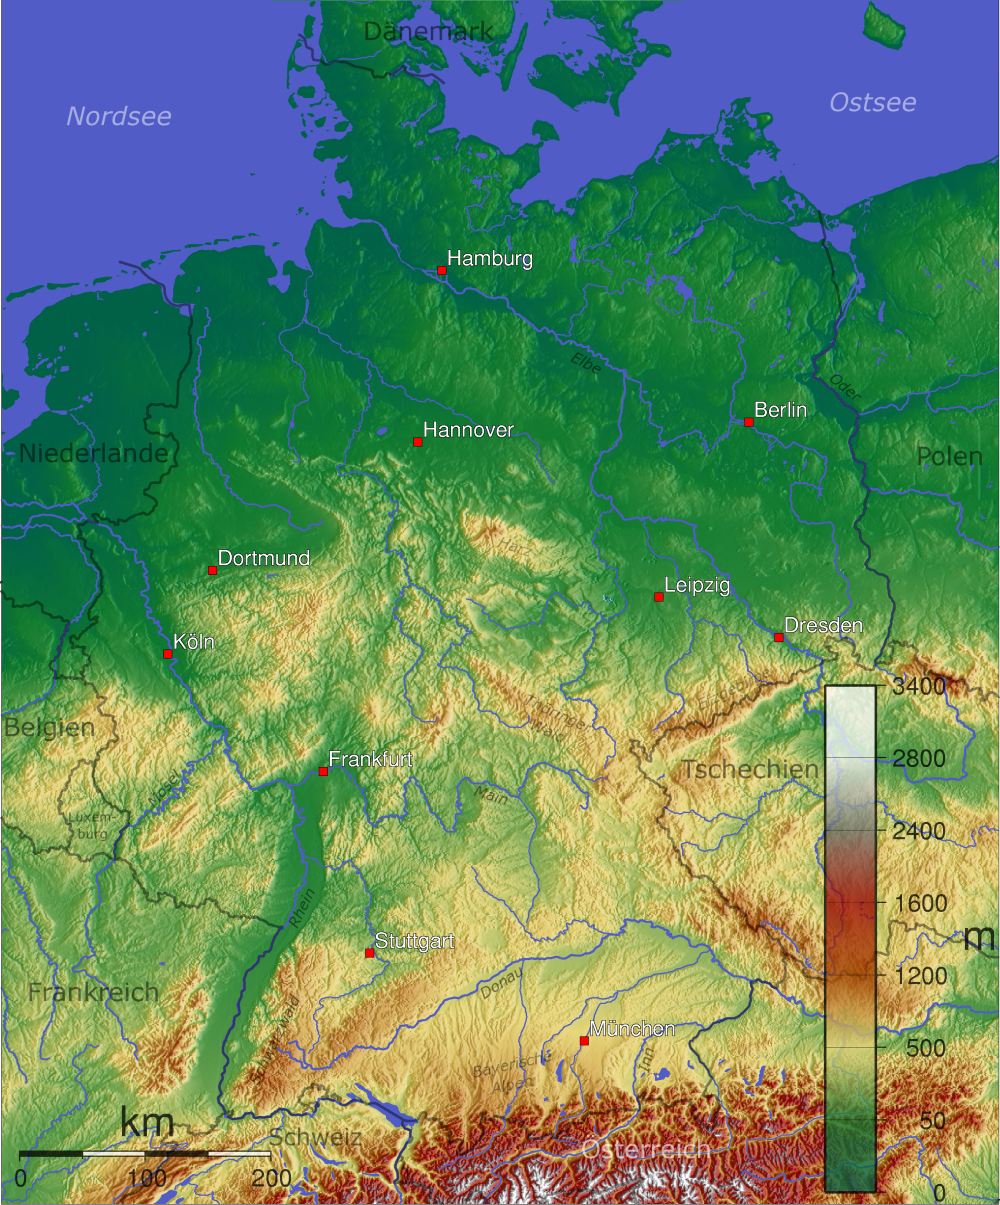 Outline of Germany